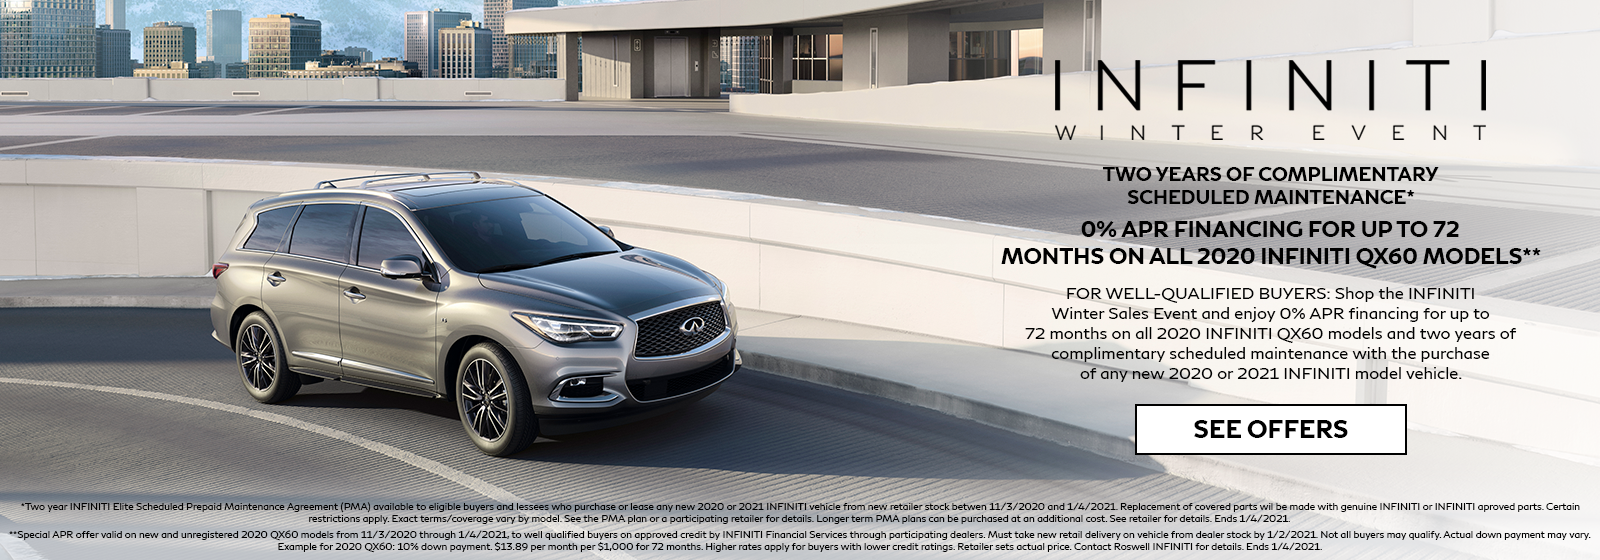 0% APR for 72 months on 2020 INFINITI QX60